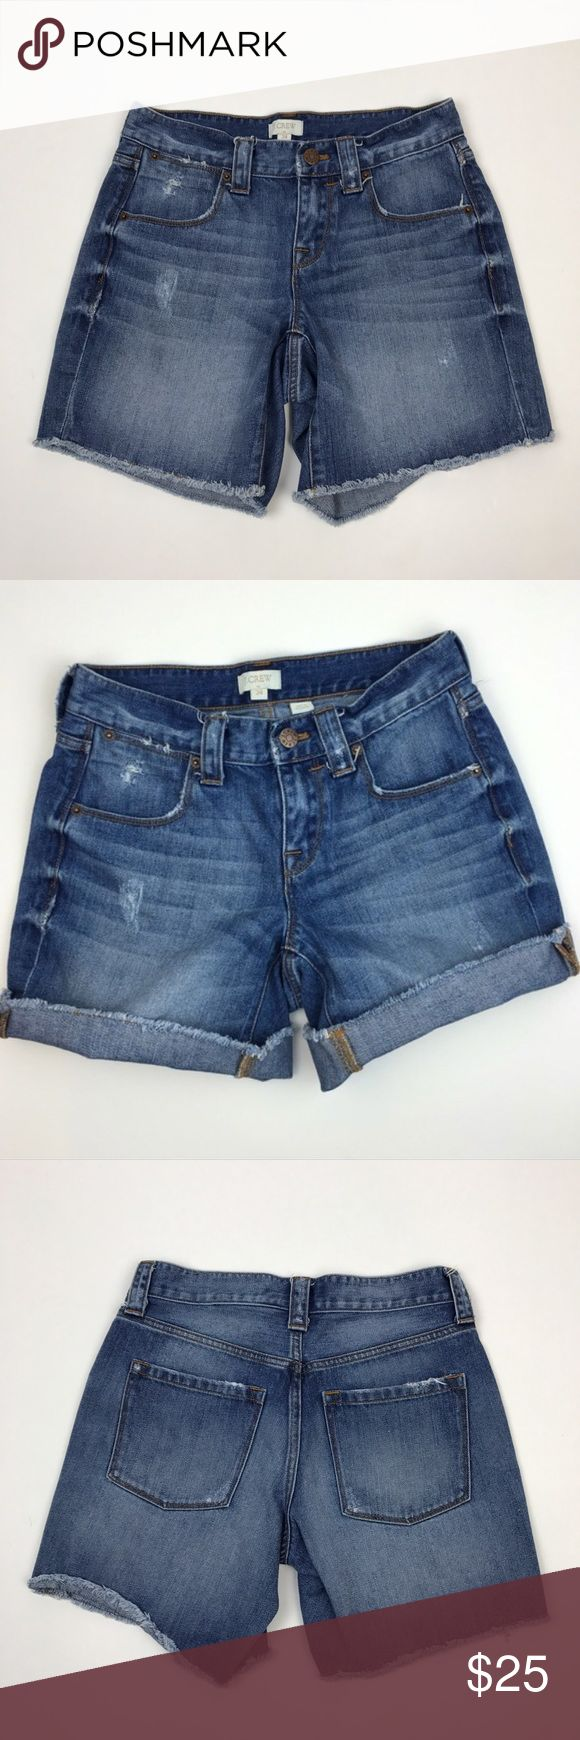 "[J Crew Factory] Cuffed Denim Shorts Cutoff Long J Crew Factory Denim Shorts. Sits just above hip. Frayed edges. Can be worn long or cuffed. Relaxed fit.  🔹Waist: 13"" 🔹Hips: 17"" 🔹Rise: 7.5"" 🔹Inseam: 6"" 🔹Condition: Excellent pre-owned condition. Distressed by design.  *BB18 J. Crew Shorts Jean Shorts"